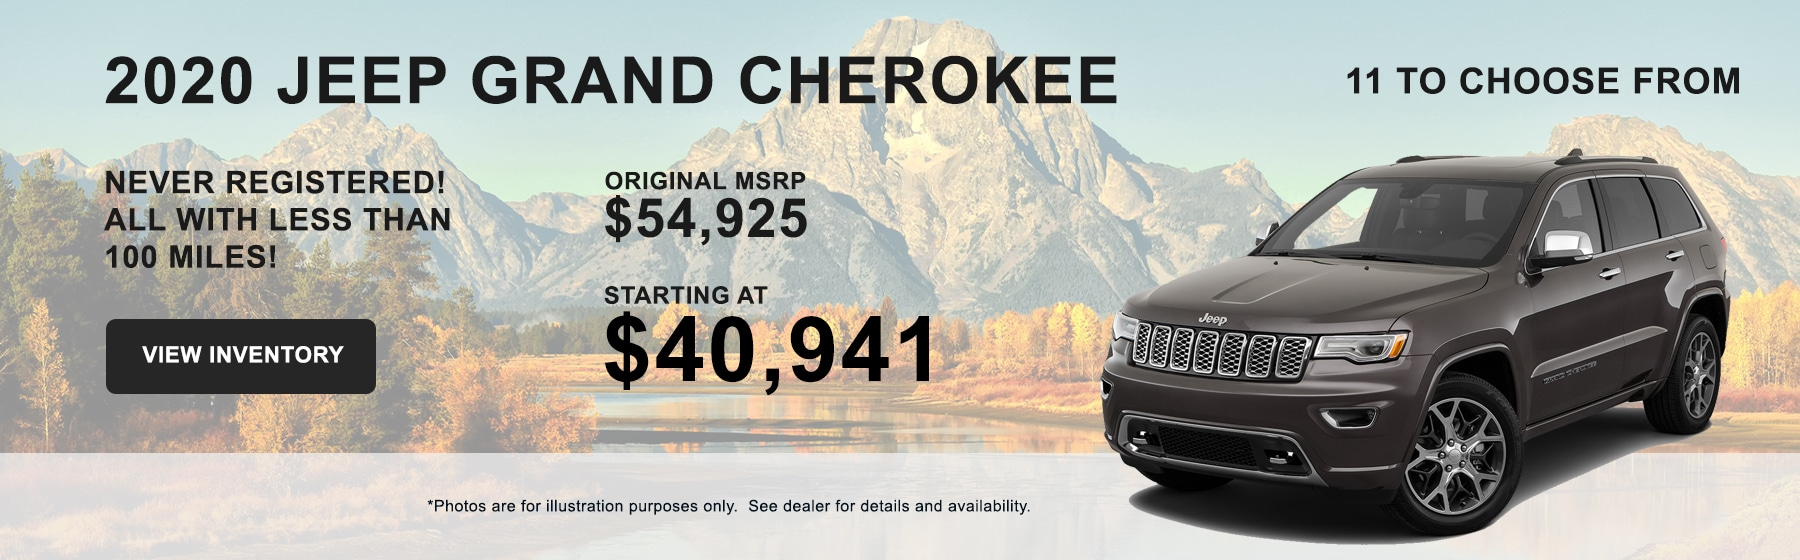 2020 Jeep Grand Cherokee Buy for $40,491